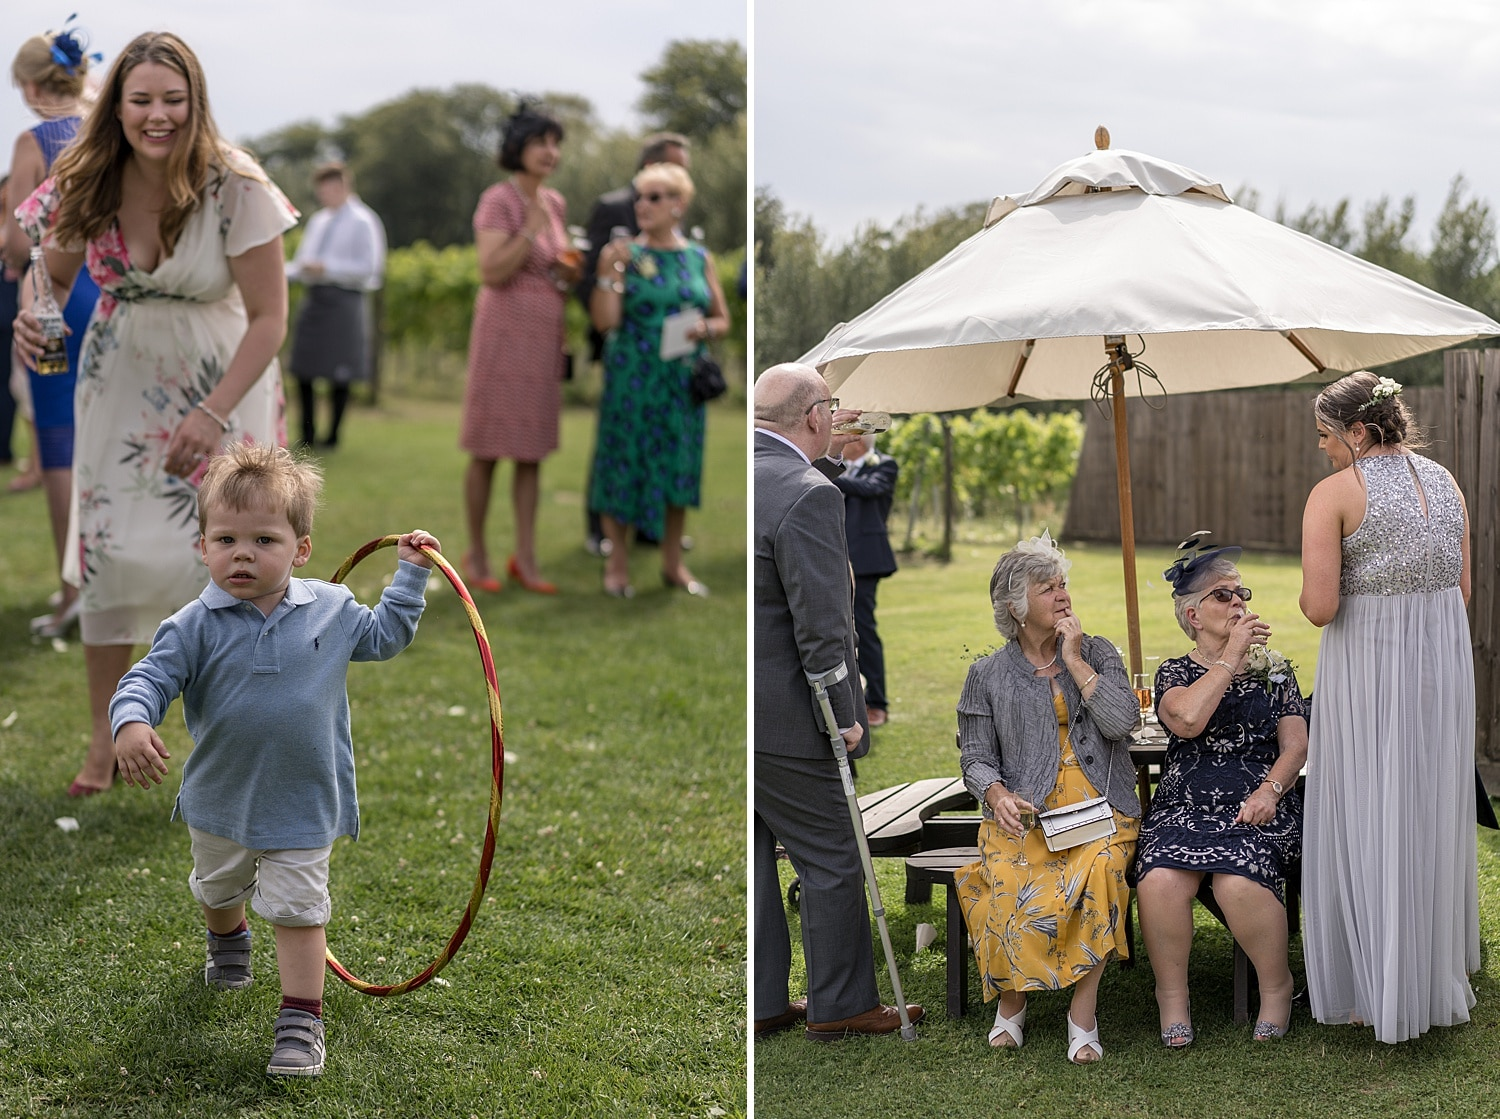 Wedding guest with hula hoop